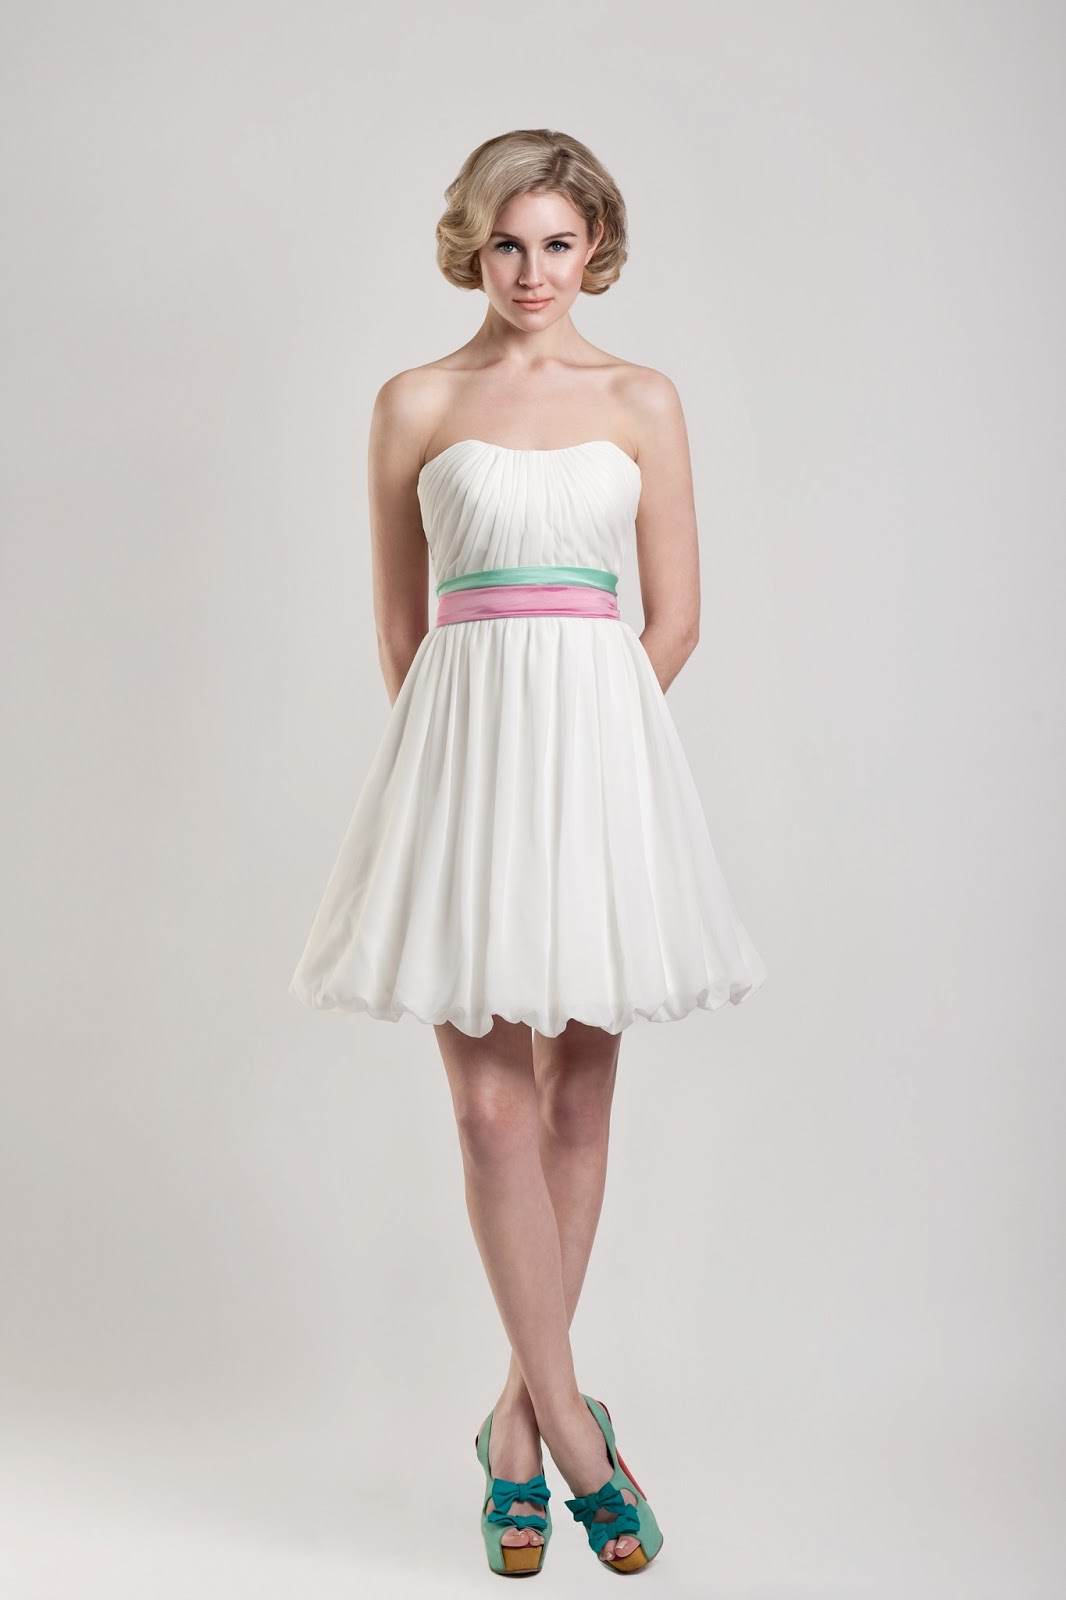 dressybridal 5 cute short wedding dresses for summer